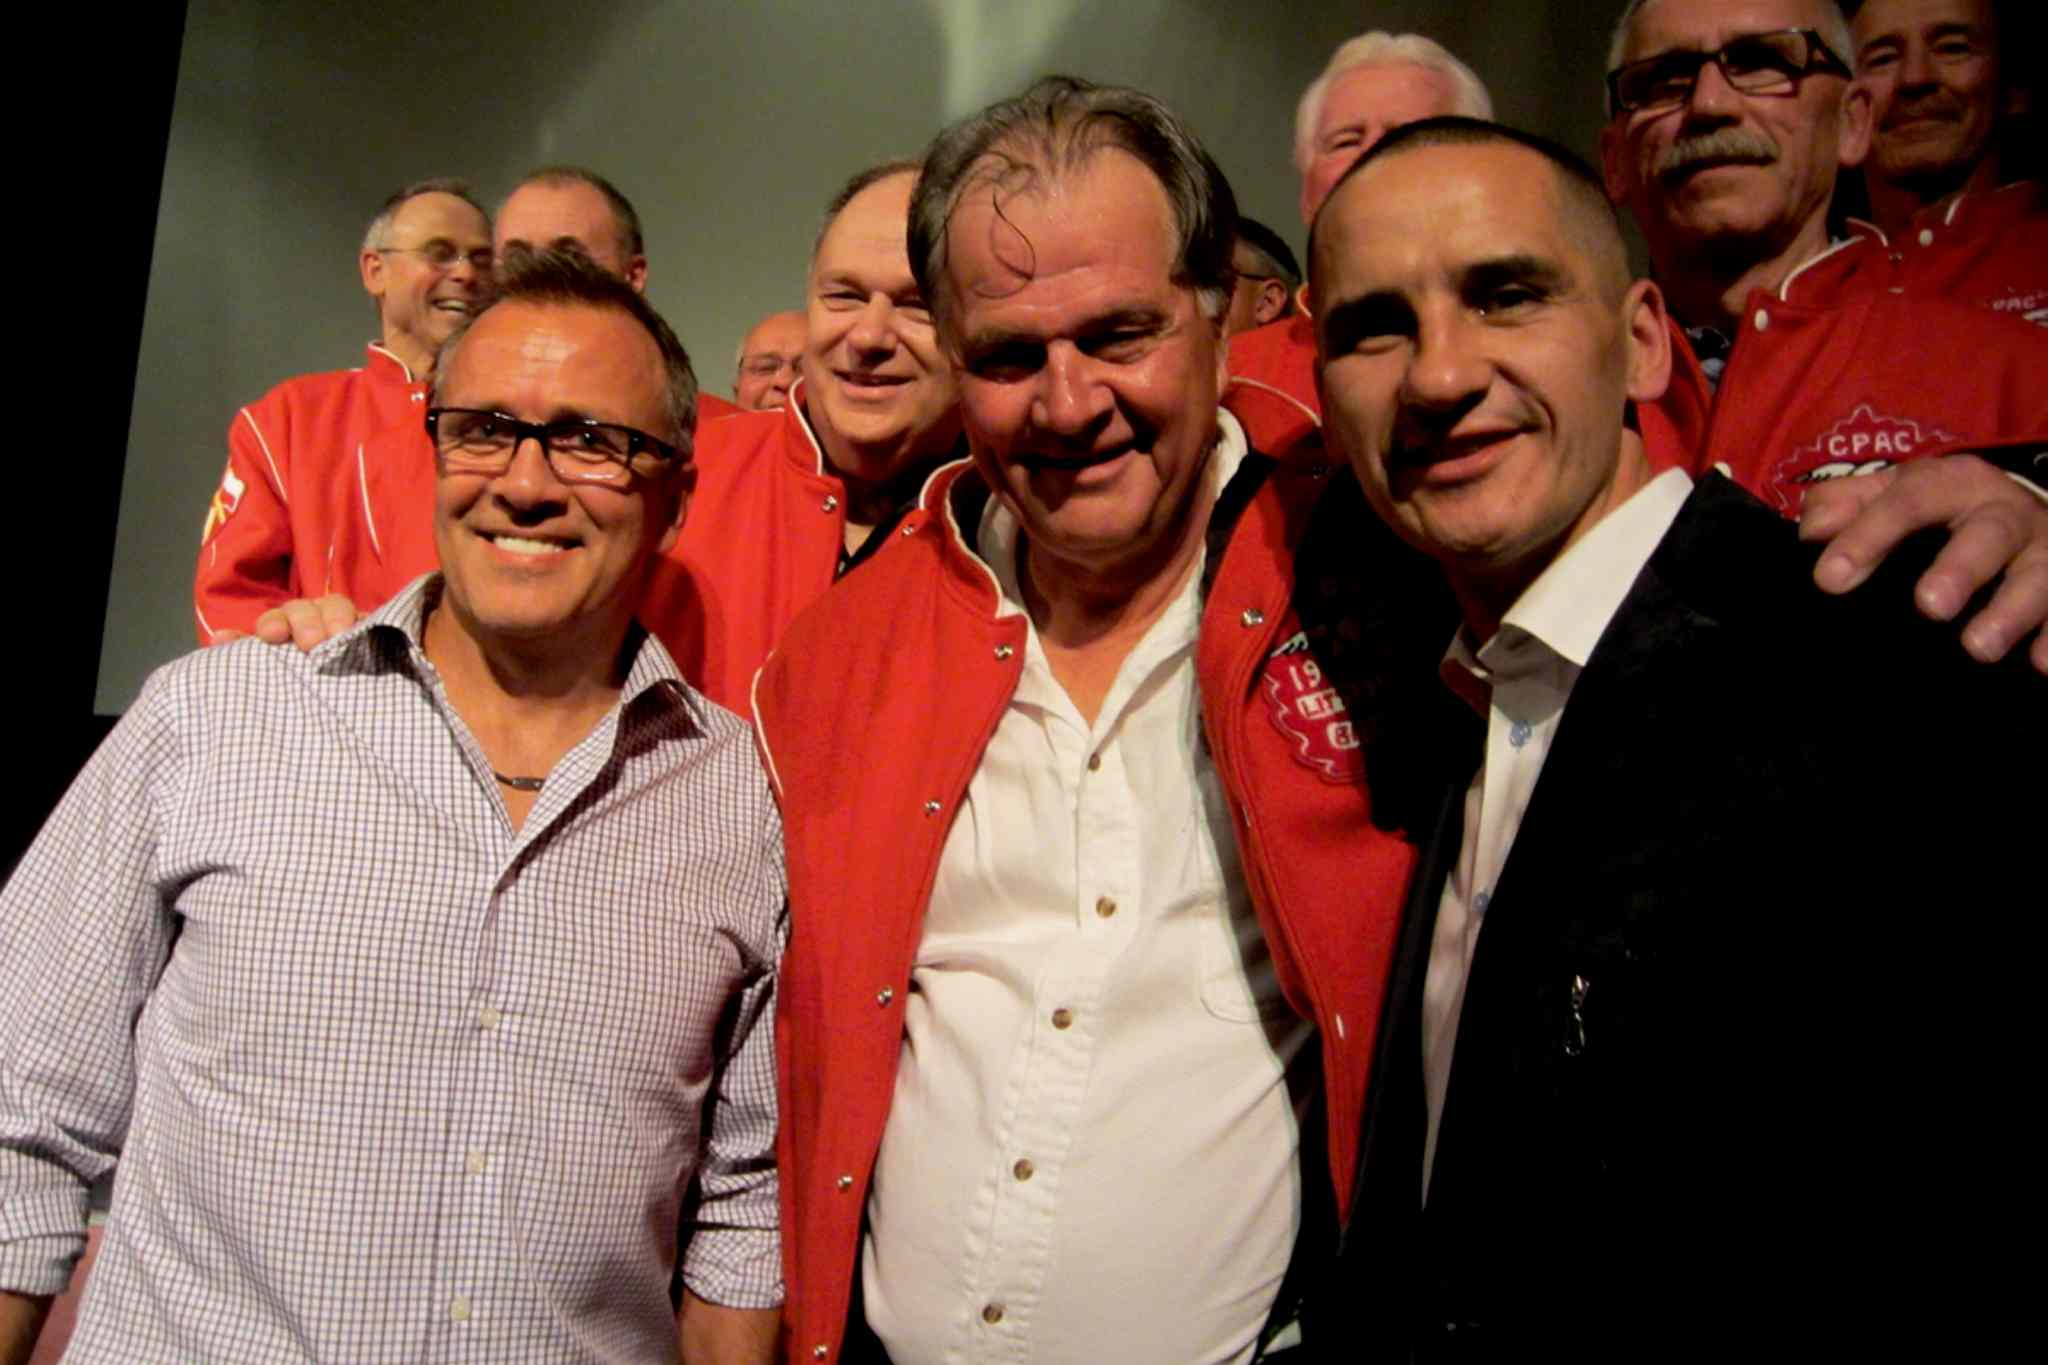 Kevin Chief, MLA for Point Douglas, at the public screening of Behind in the Count with members of the 1965 Western Canadian Little League Championship team from Winnipeg's North End.